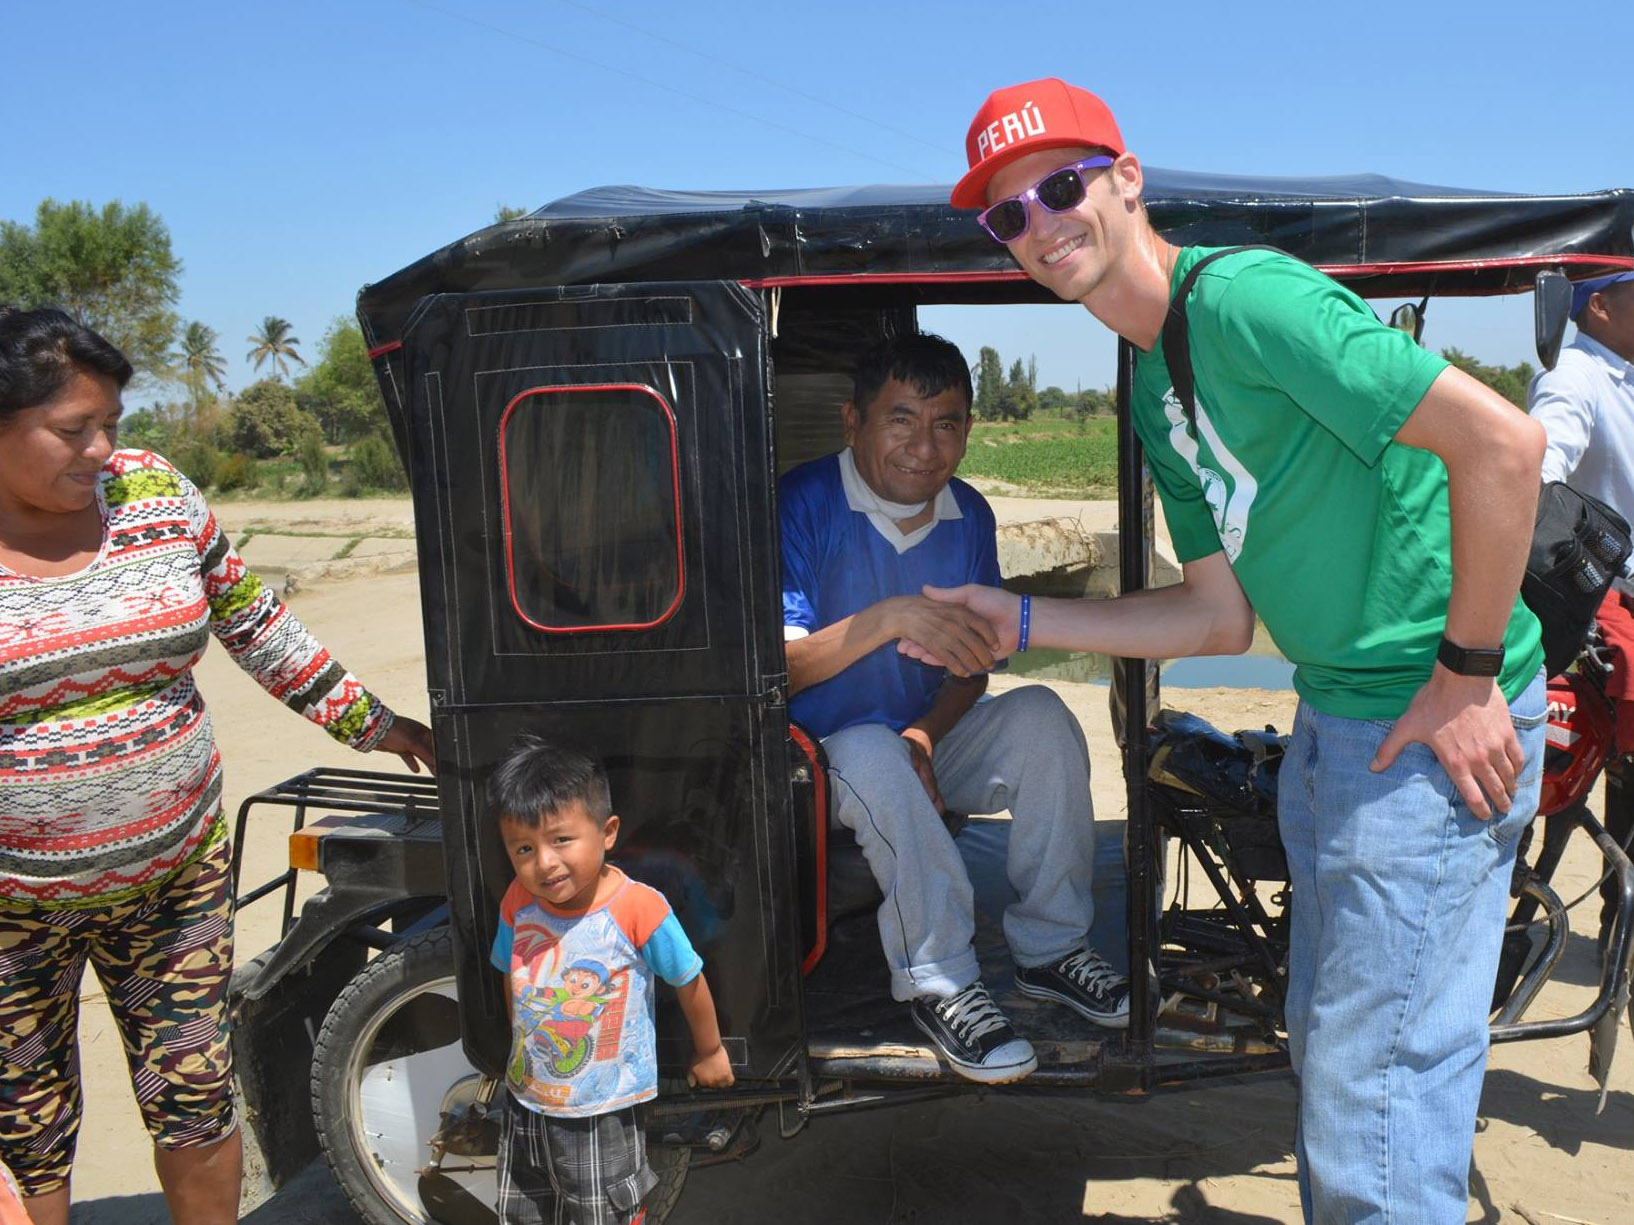 Jacob Niemeier, far right, greets Manuel, center, a Monte Castillo, Peru resident who was diagnosed with parasitic worms after drinking local contaminated water. Manuel is now free of the parasitic worms but still has medical issues as a result of carrying the worms in his body. (VAVV photo)